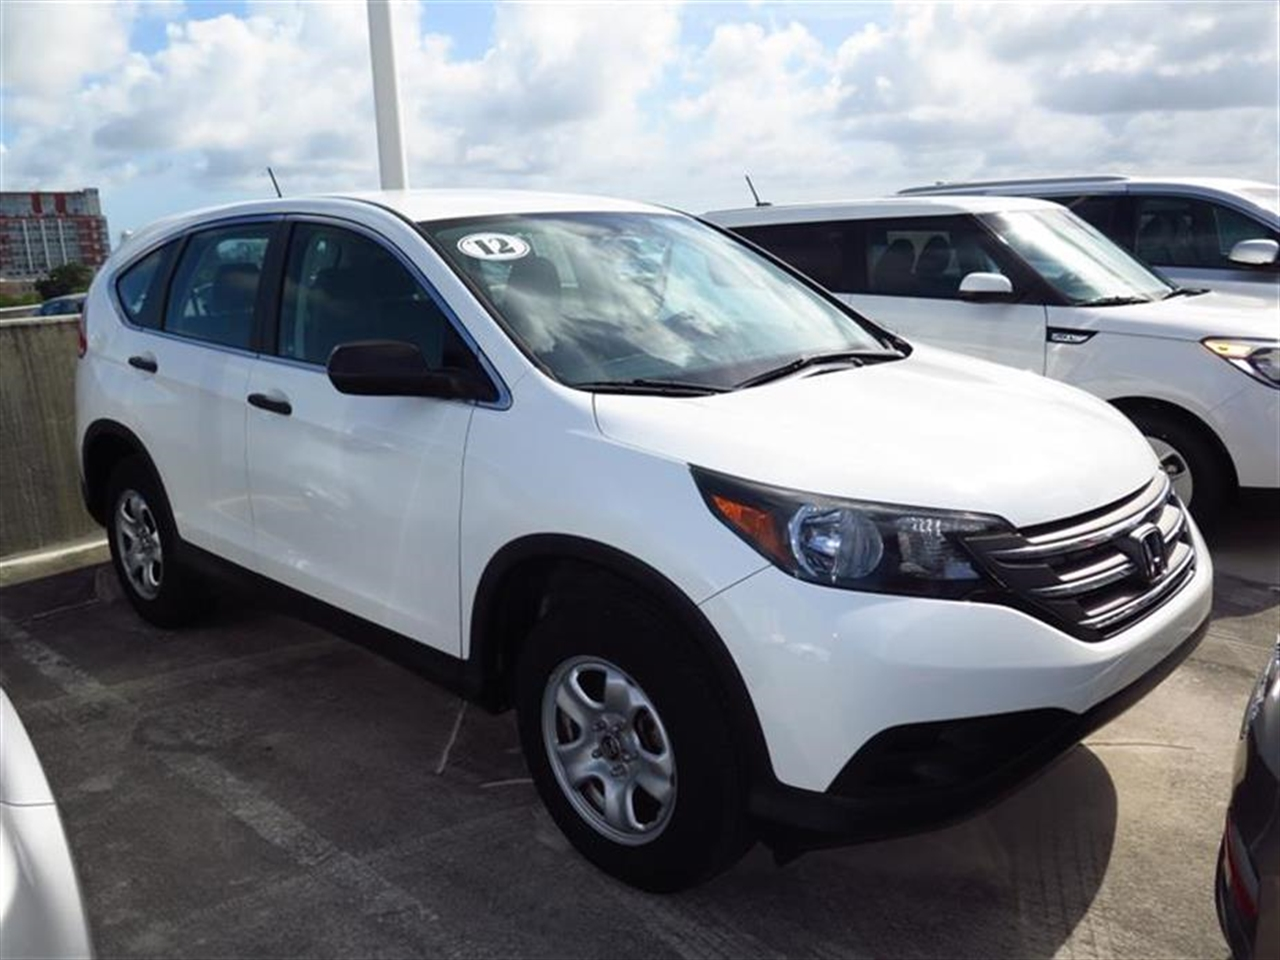 2012 HONDA CRV 2WD 5dr LX 15593 miles 4 cargo area tie-down anchors 8 cup holders 12V pwr o